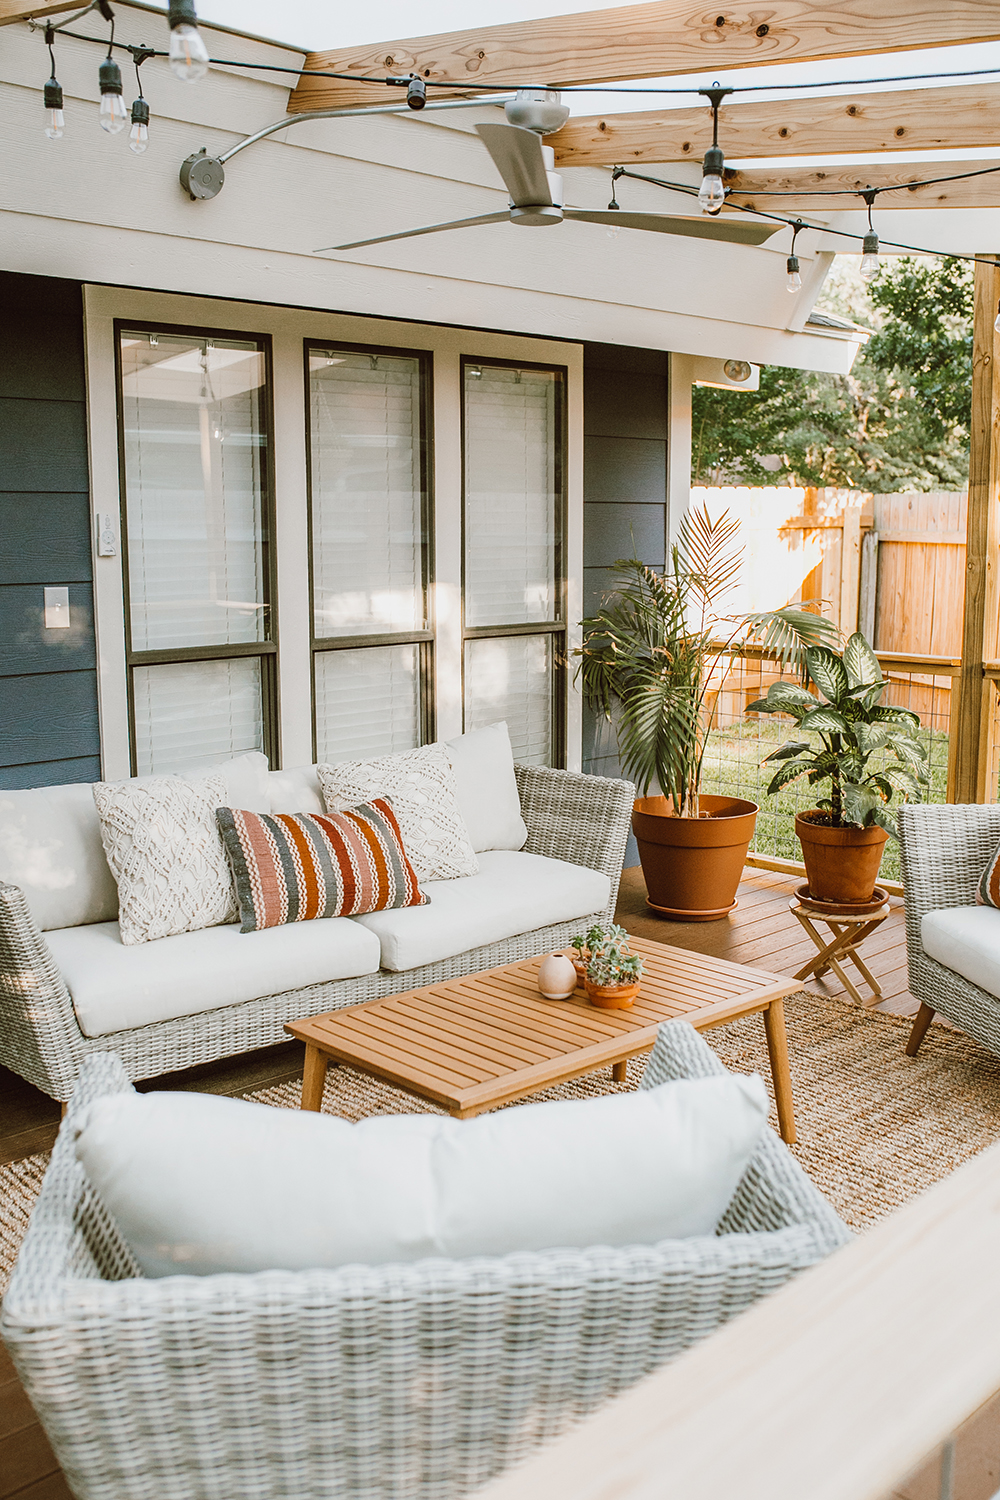 livvyland-blog-olivia-watson-before-after-outside-patio-renovation-reveal-furniture-austin-texas-lifestyle-blogger-4